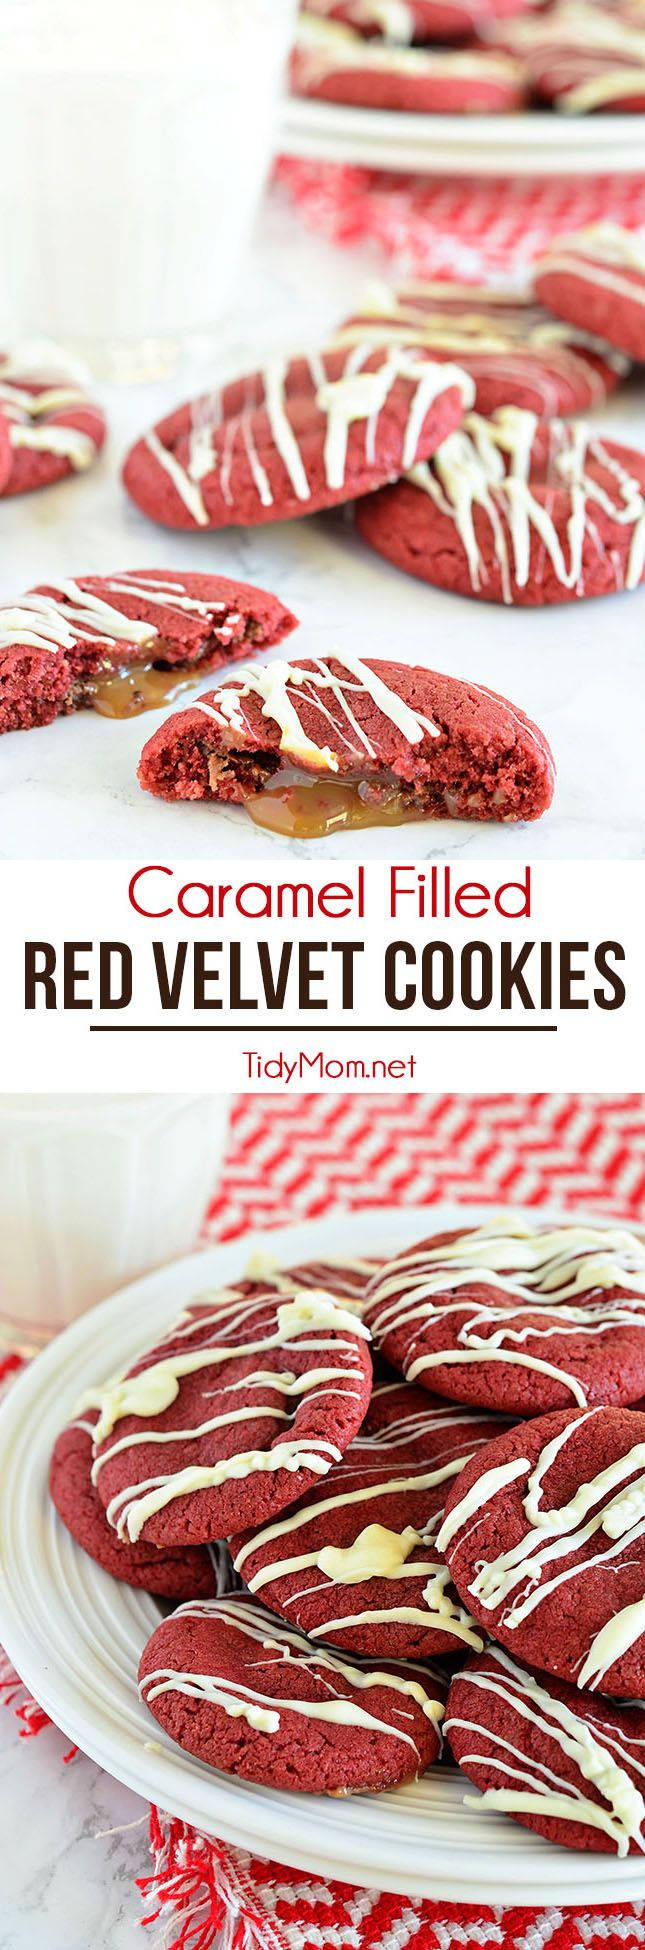 Your favorite sugar cookie dough is quickly transformed into gorgeous red velvet cookies stuffed with a caramel surprise and topped with a drizzle of white chocolate. Easy Caramel Filled Red Velvet Cookies recipe at TidyMom.net